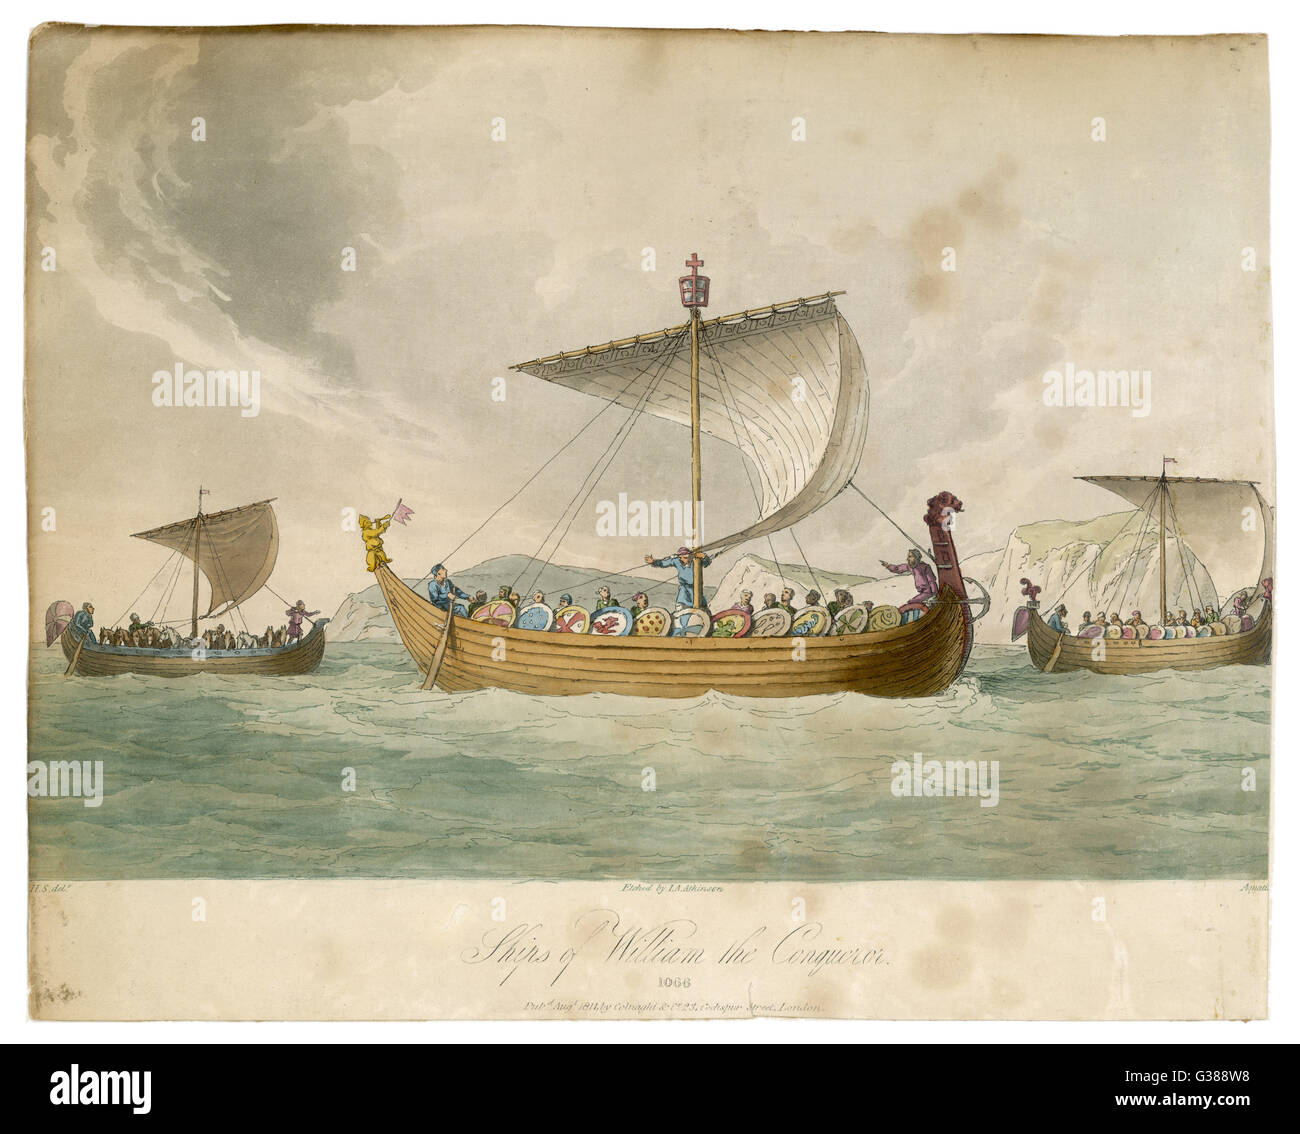 Ships of William the Conqueror  sailing to battle         Date: 1066 - Stock Image